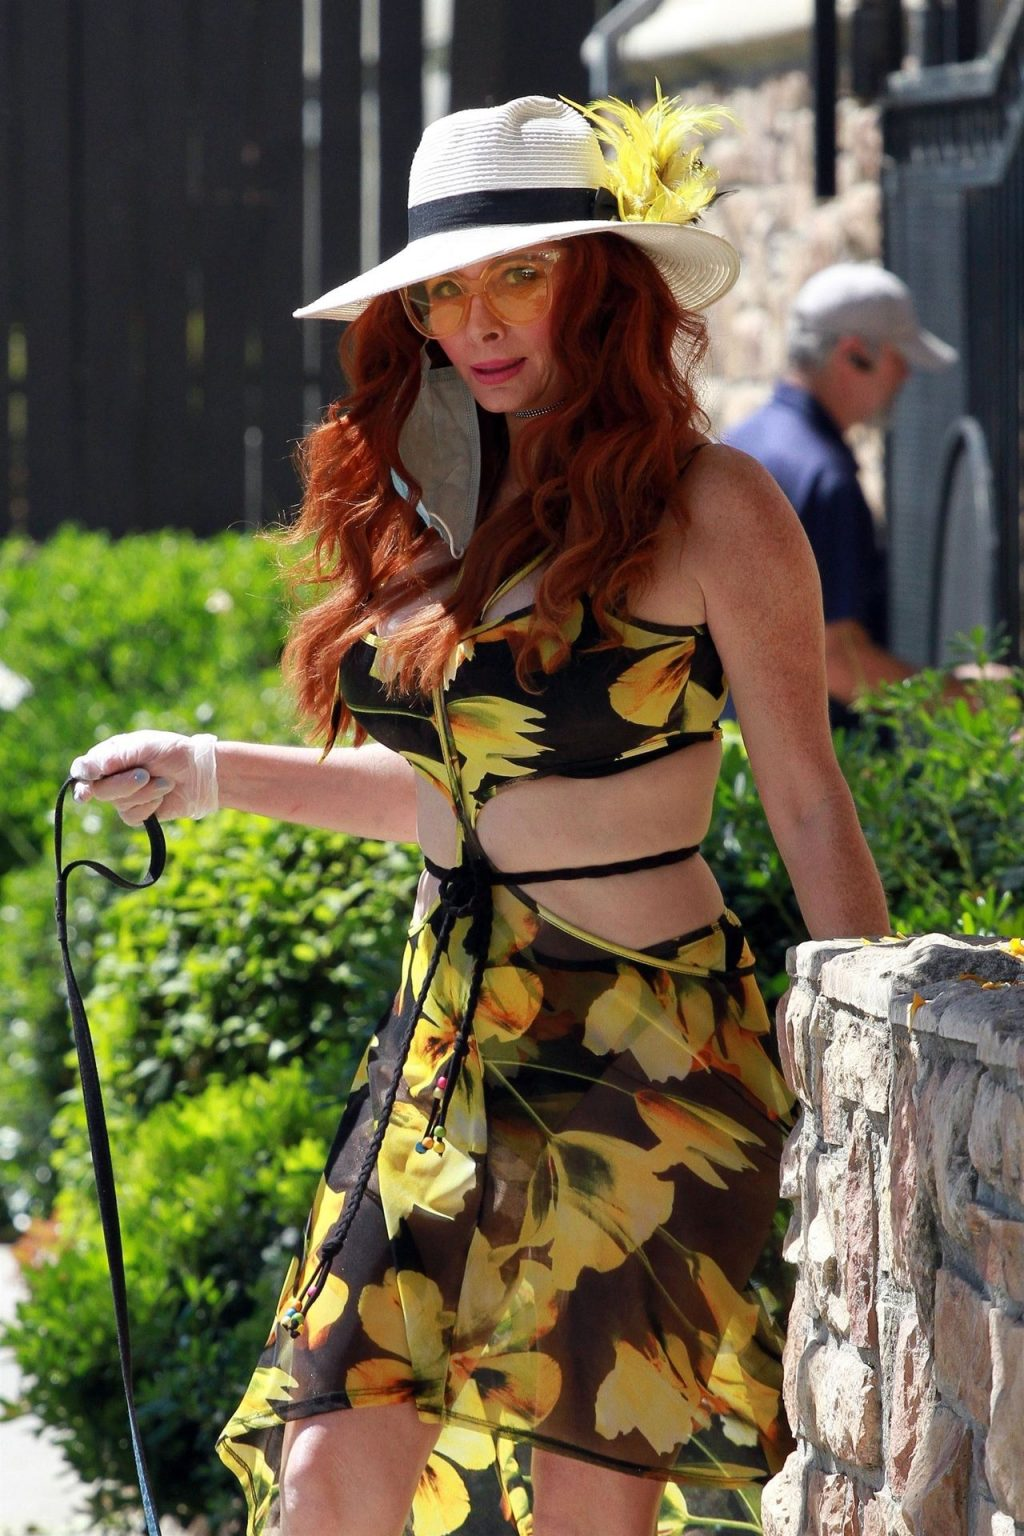 Phoebe Price Poses with a Few Rolls of Toilet Paper (19 Photos)